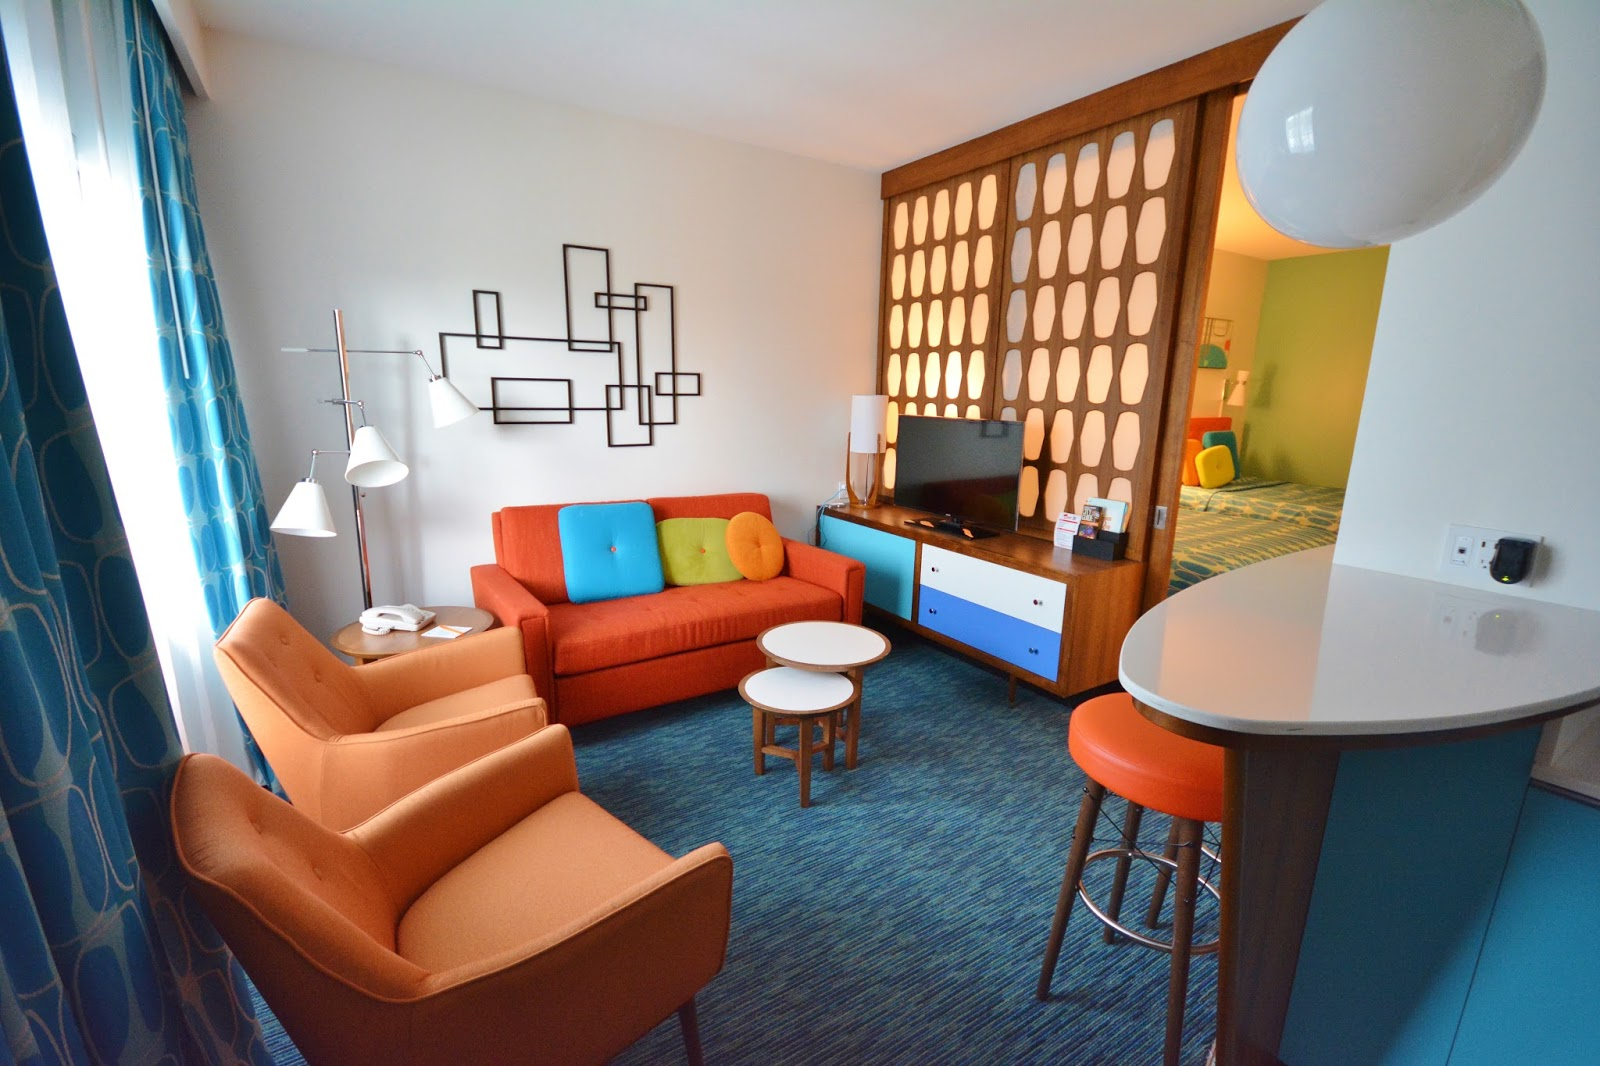 Life With 4 Boys Universal S Cabana Bay Beach Resort A Refreshing The Tower Family Suite